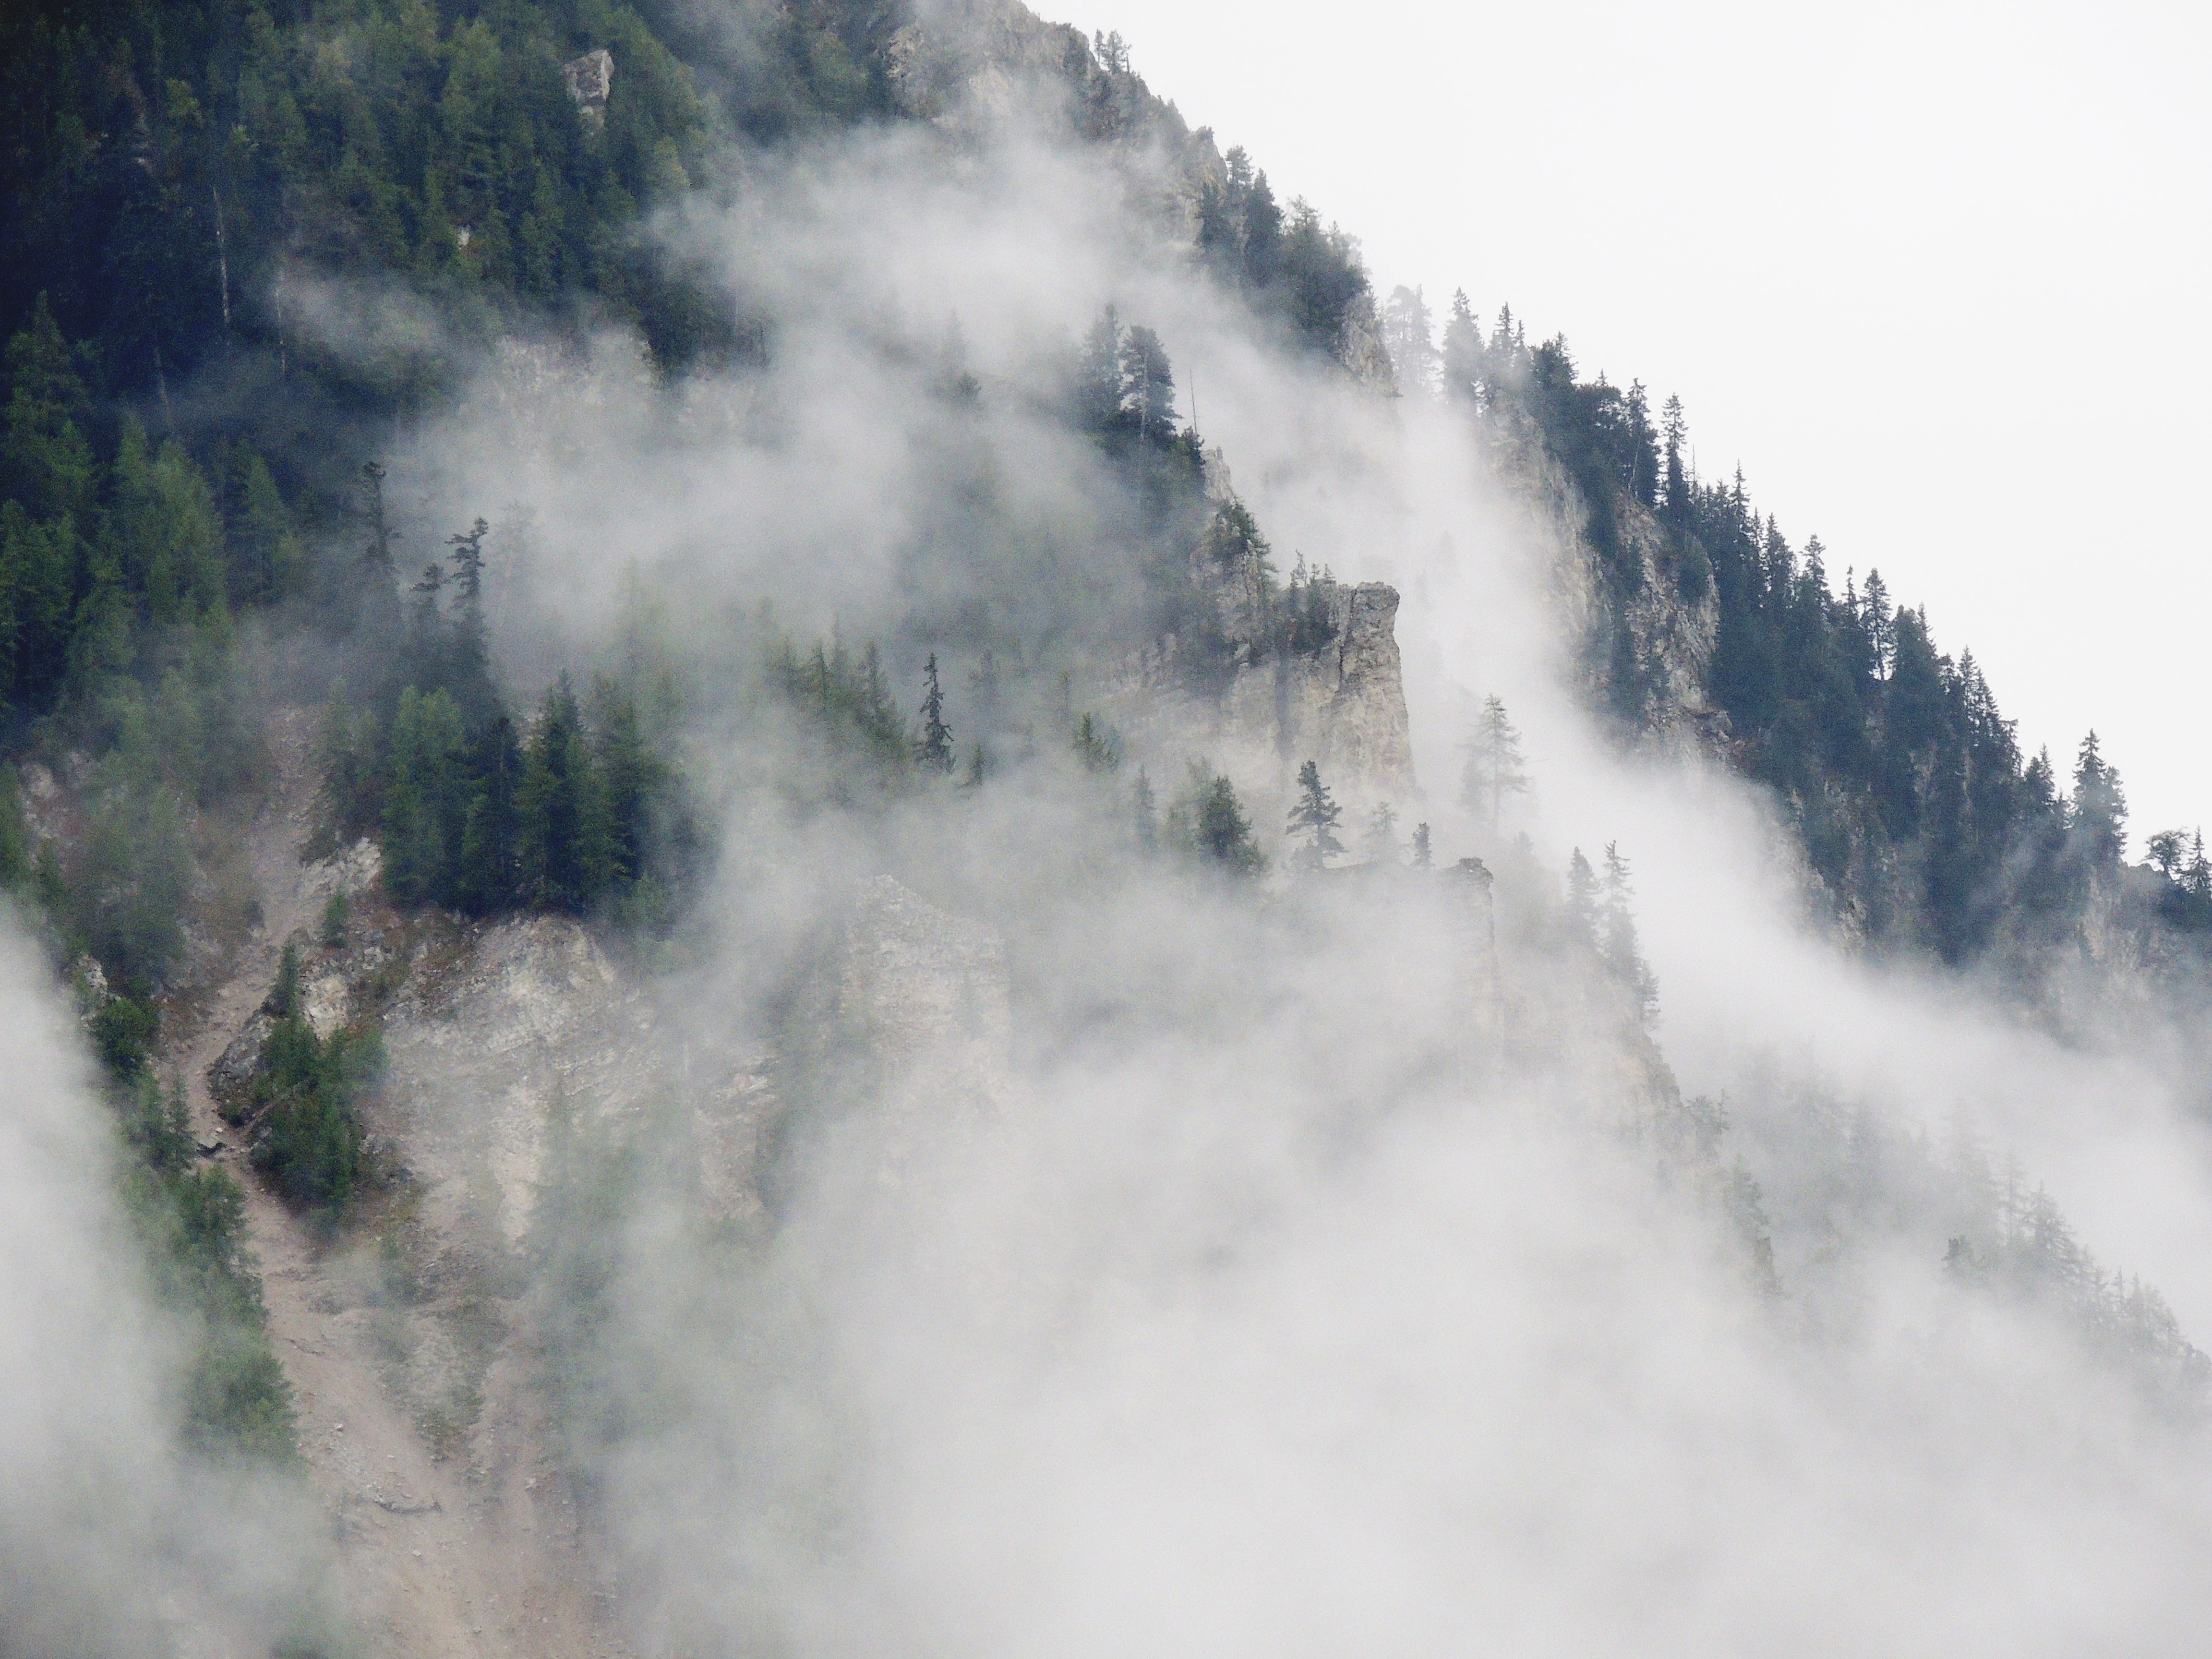 Mist rolling down a jagged mountain slope covered with coniferous trees